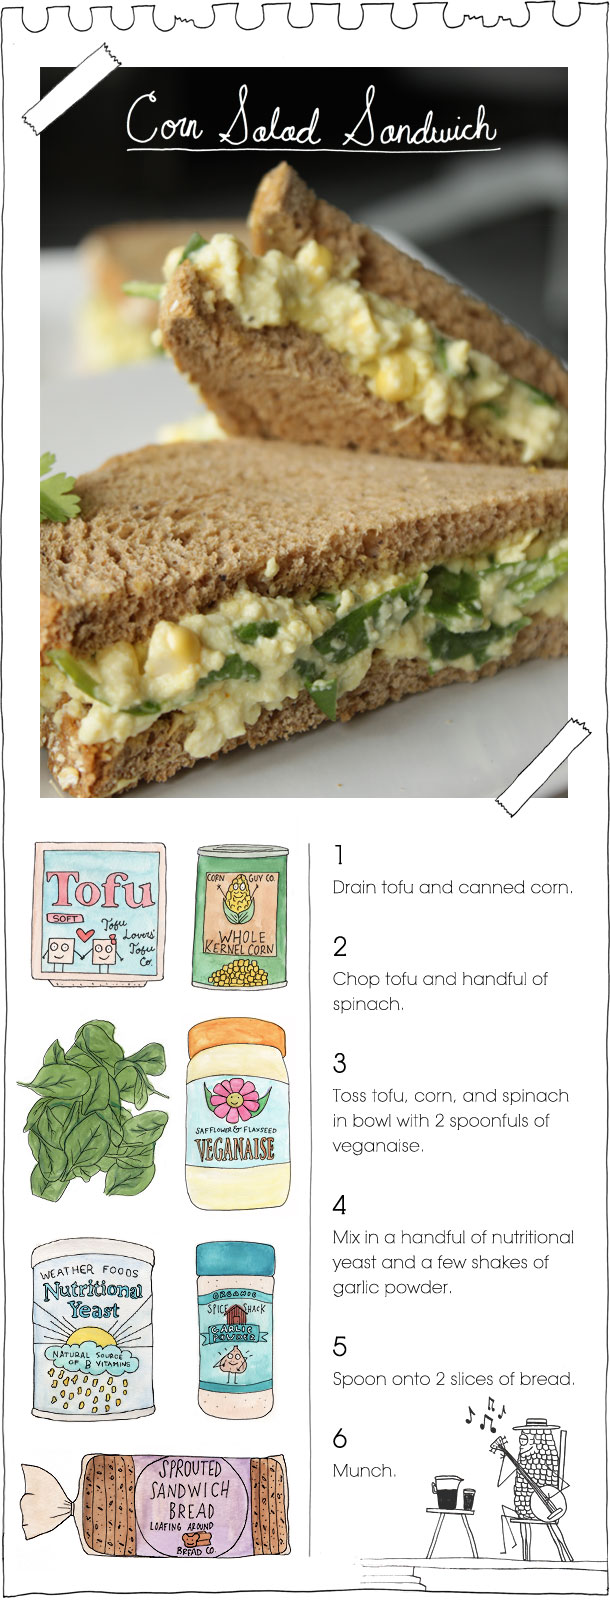 The Vegan Stoner's Corn Salad Sandwich